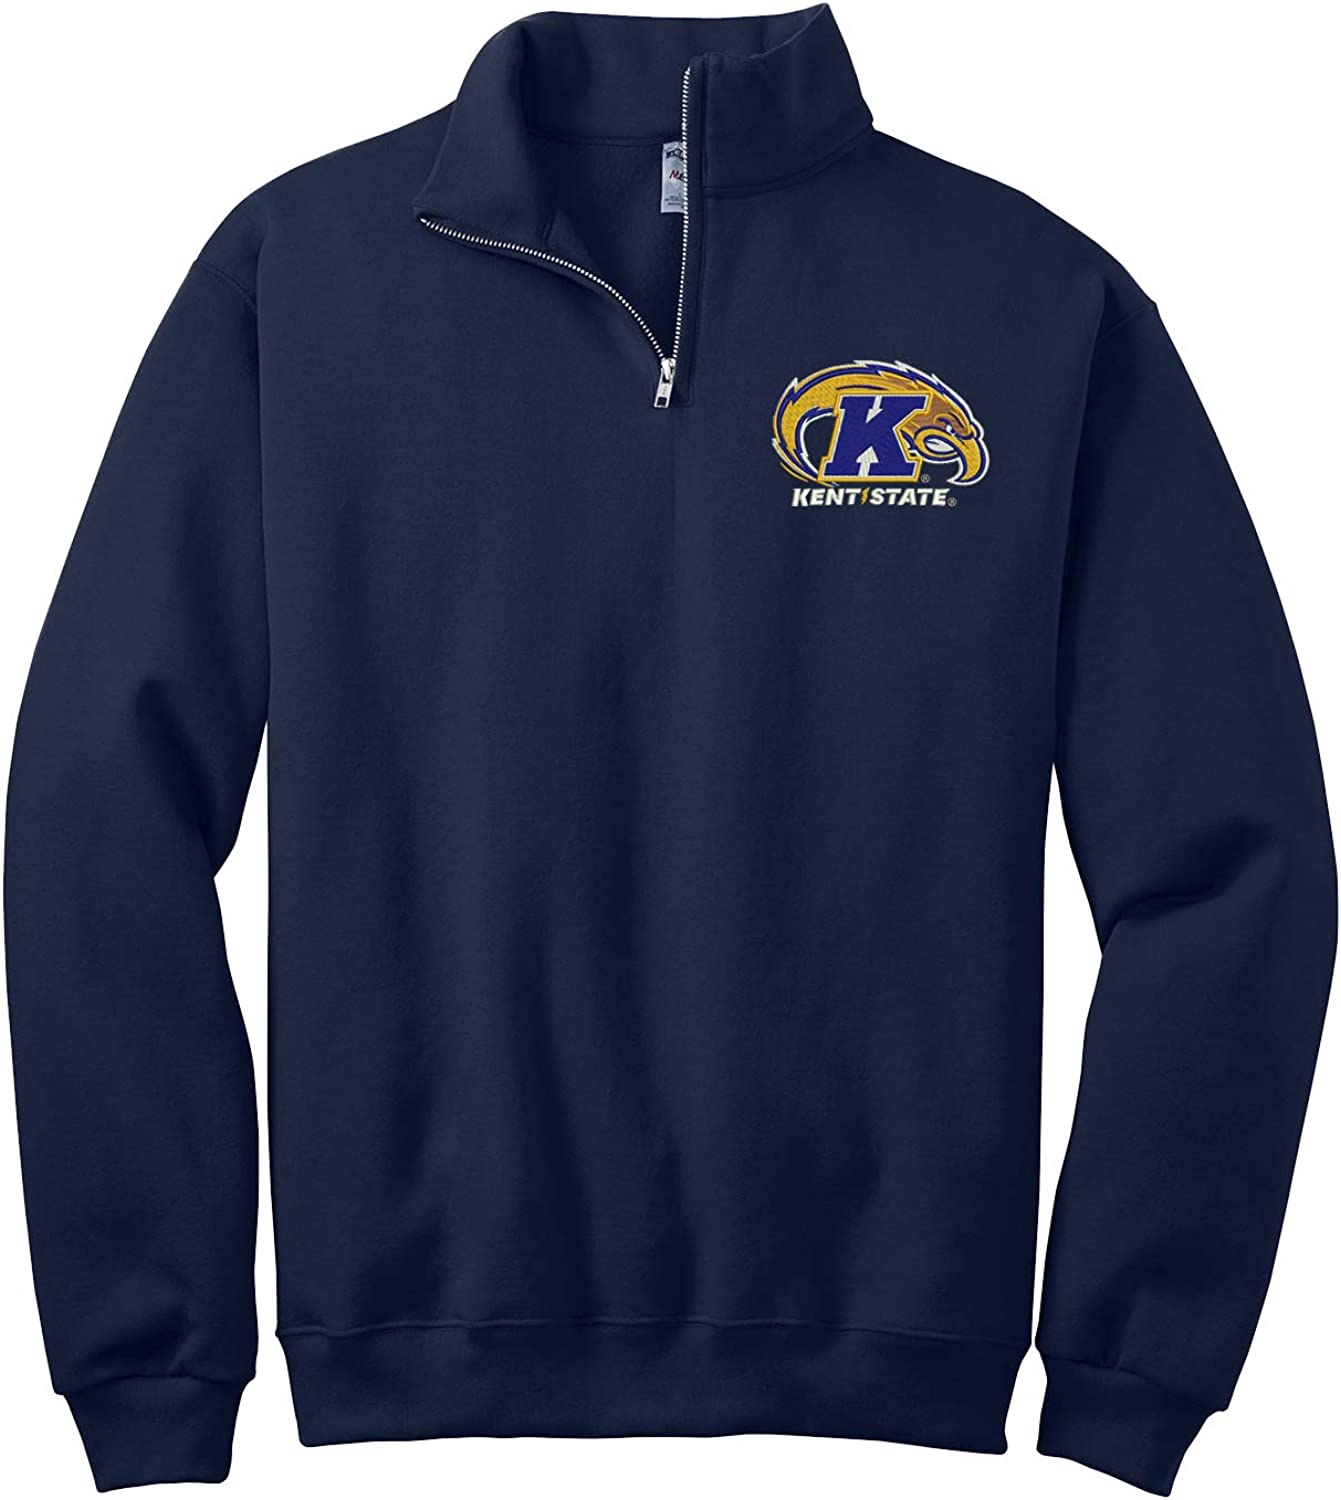 Sorority Letters Shop Kent State Colorado Springs Mall University Pullover Baltimore Mall Quarter Zip